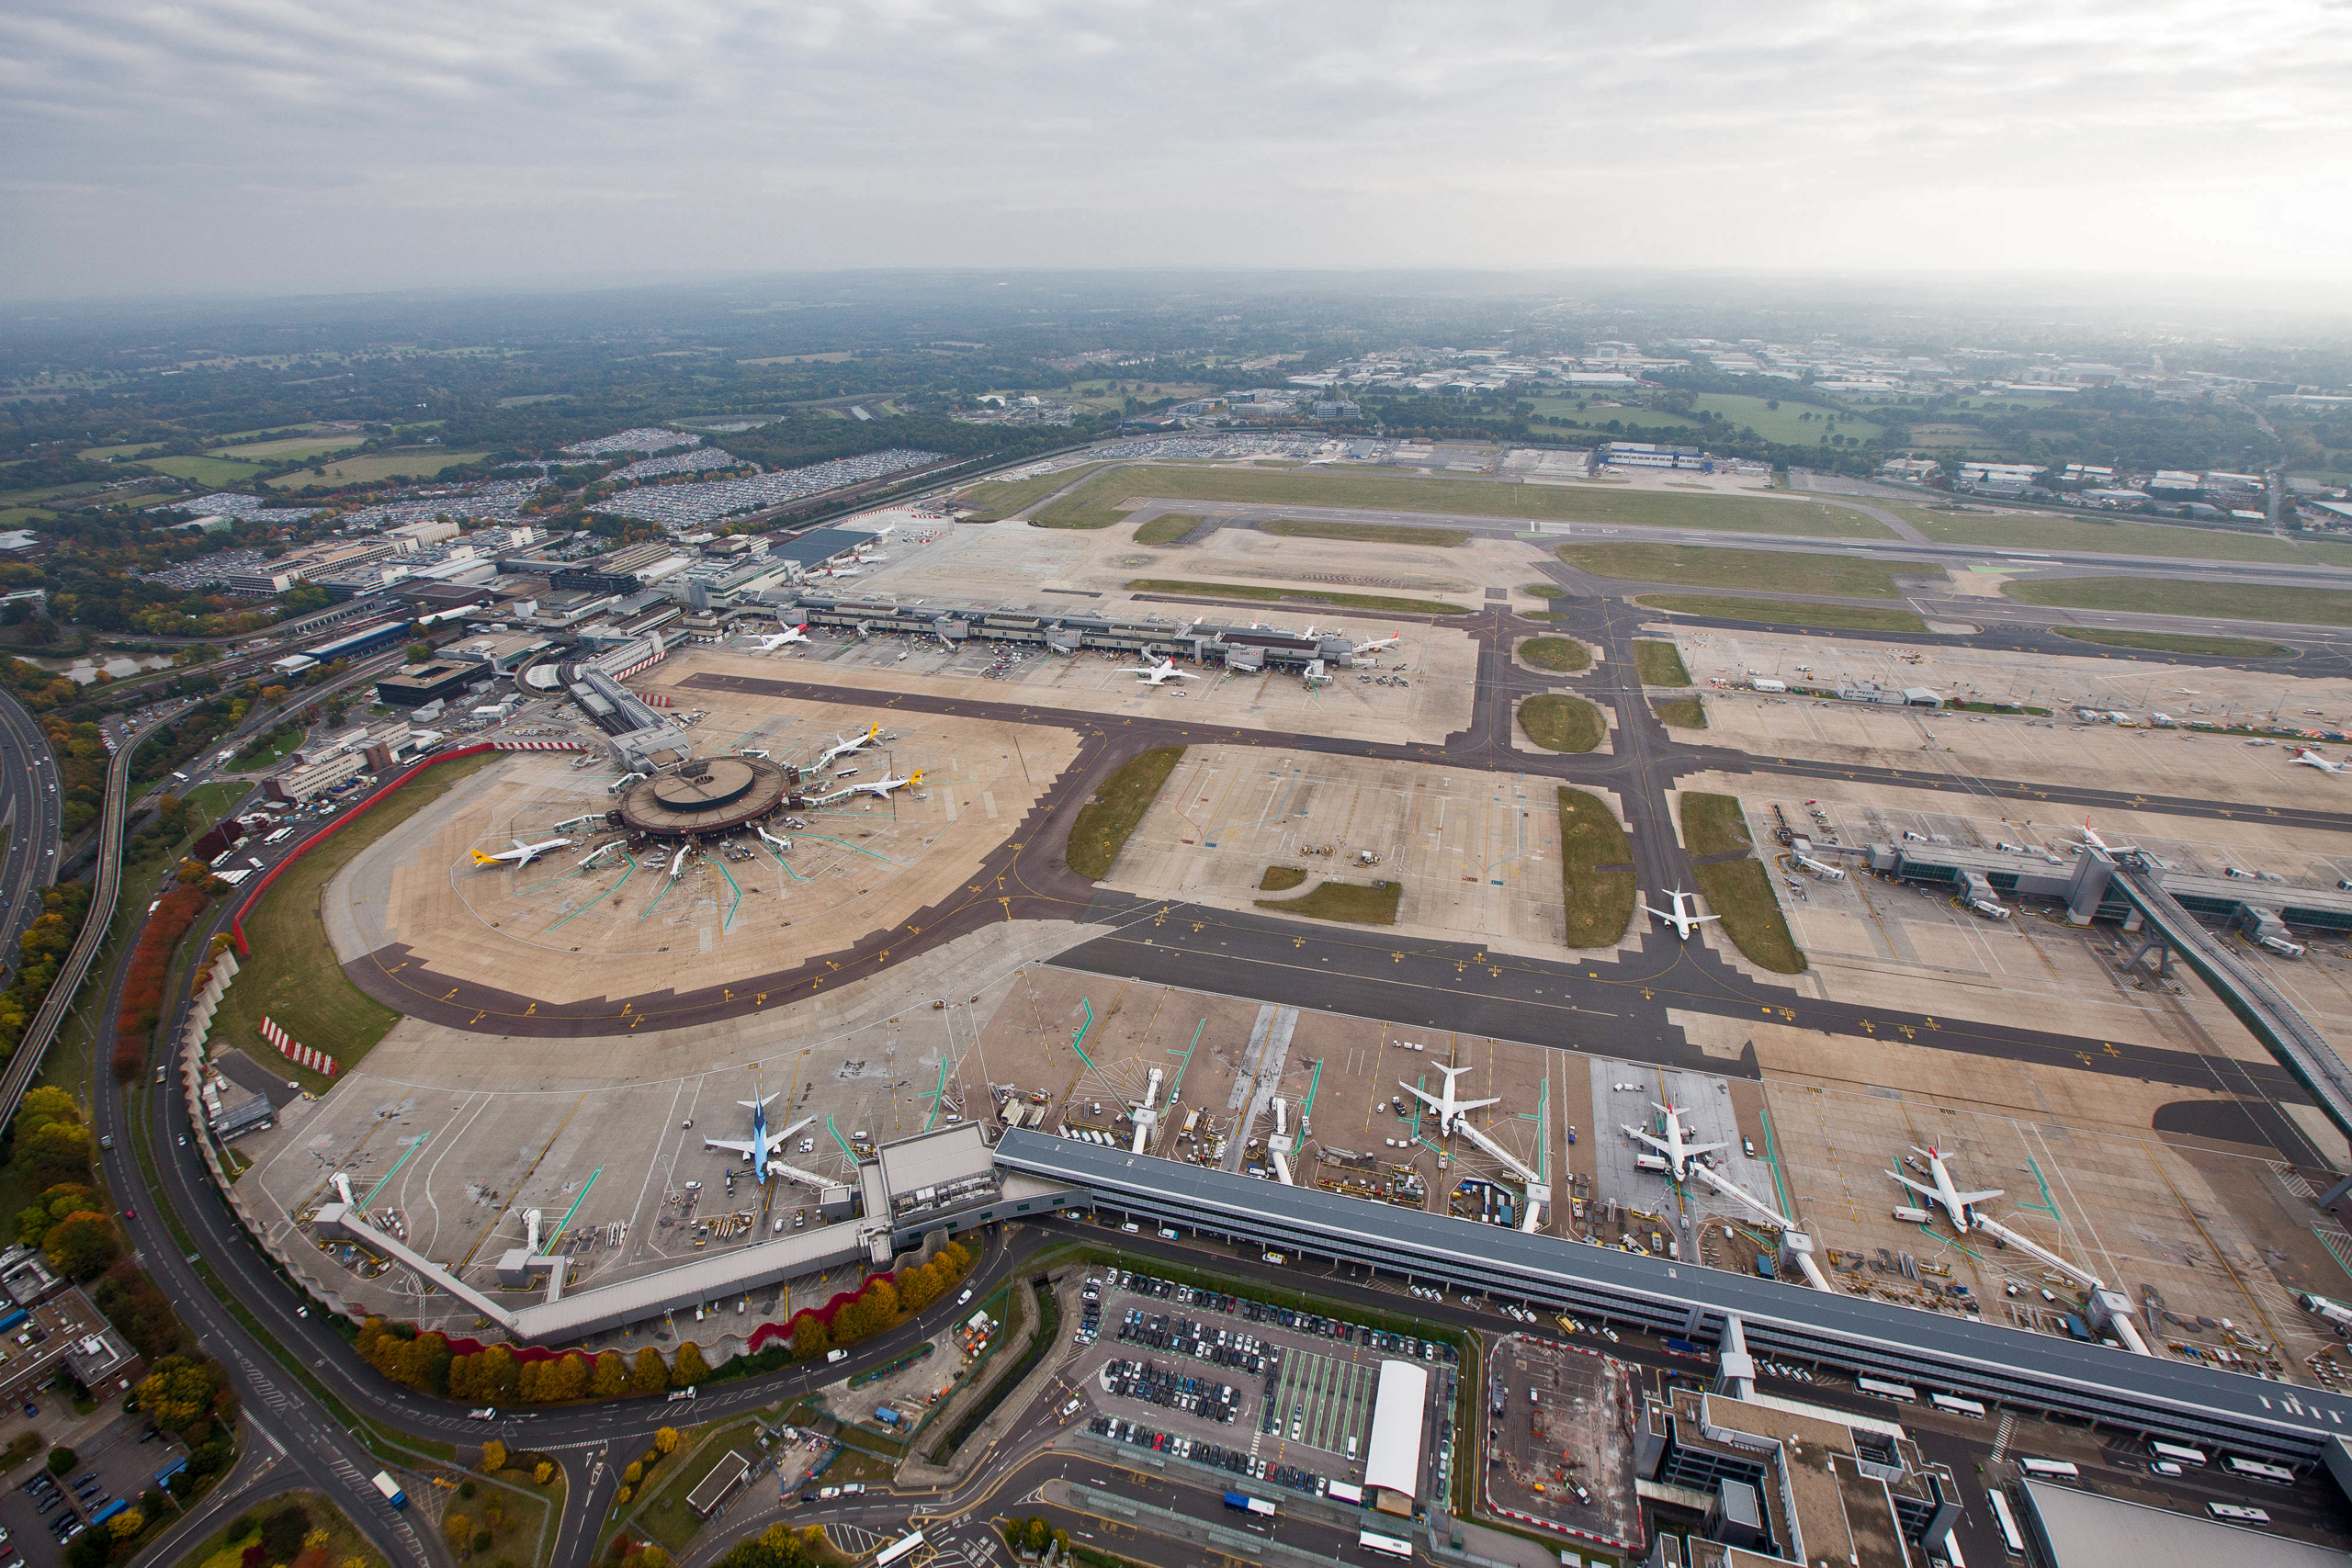 There was chaos at Gatwick airport when drones were spotted above the runways.